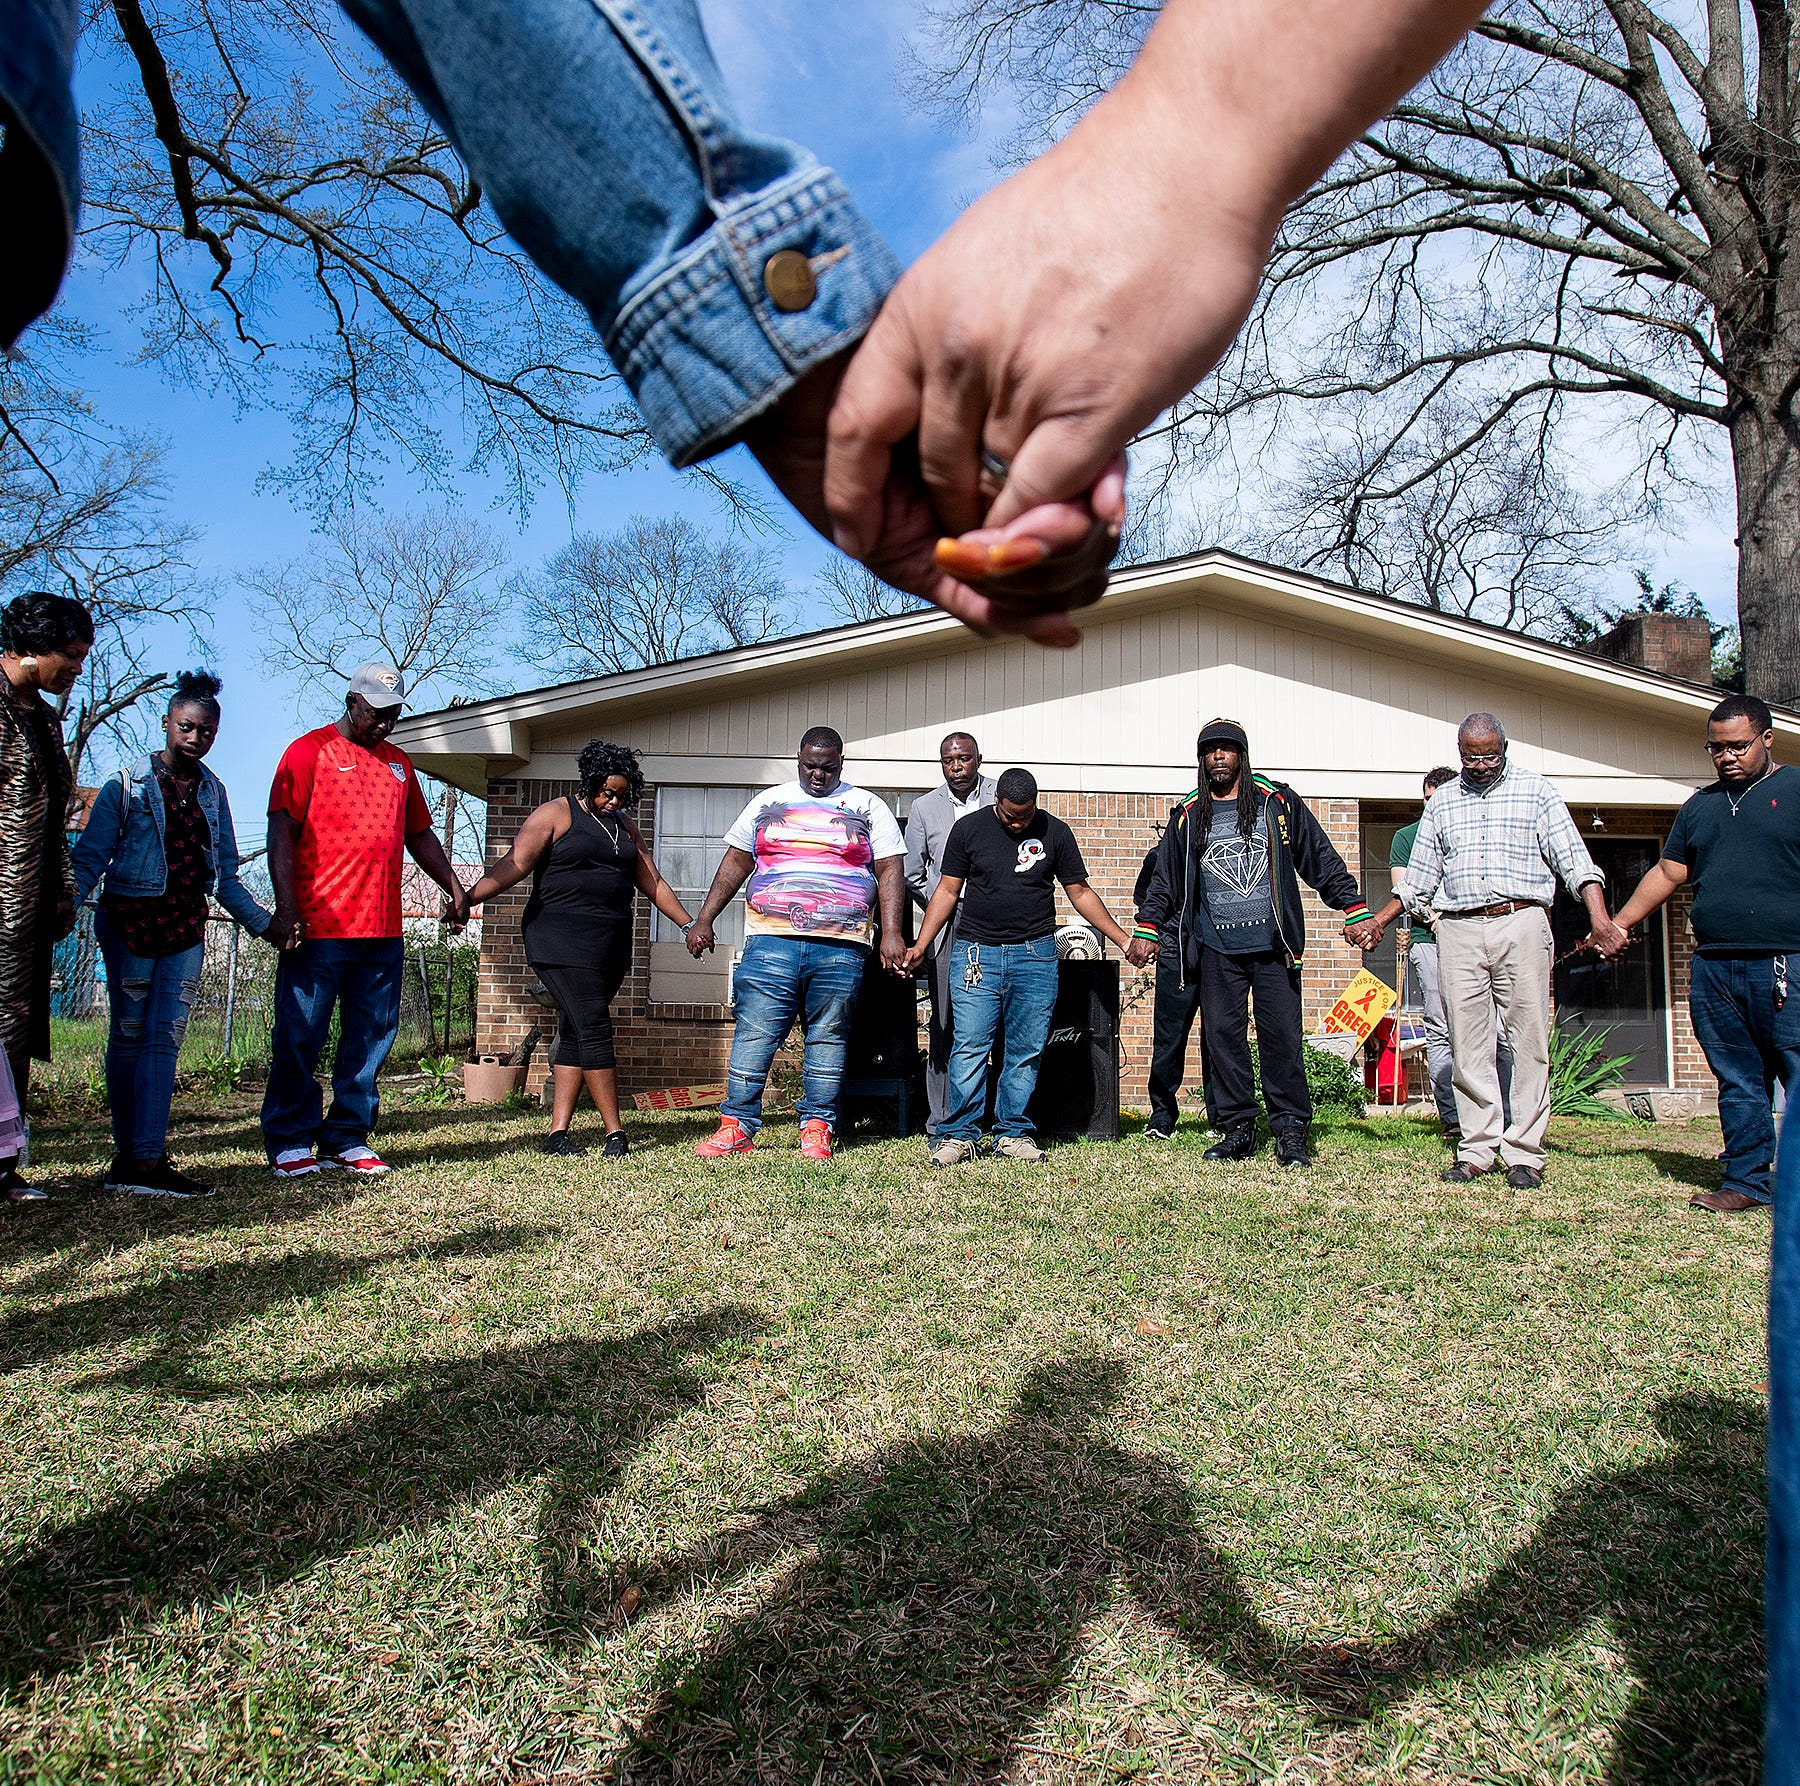 Greg Gunn mourned, celebrated three years after fatal police shooting